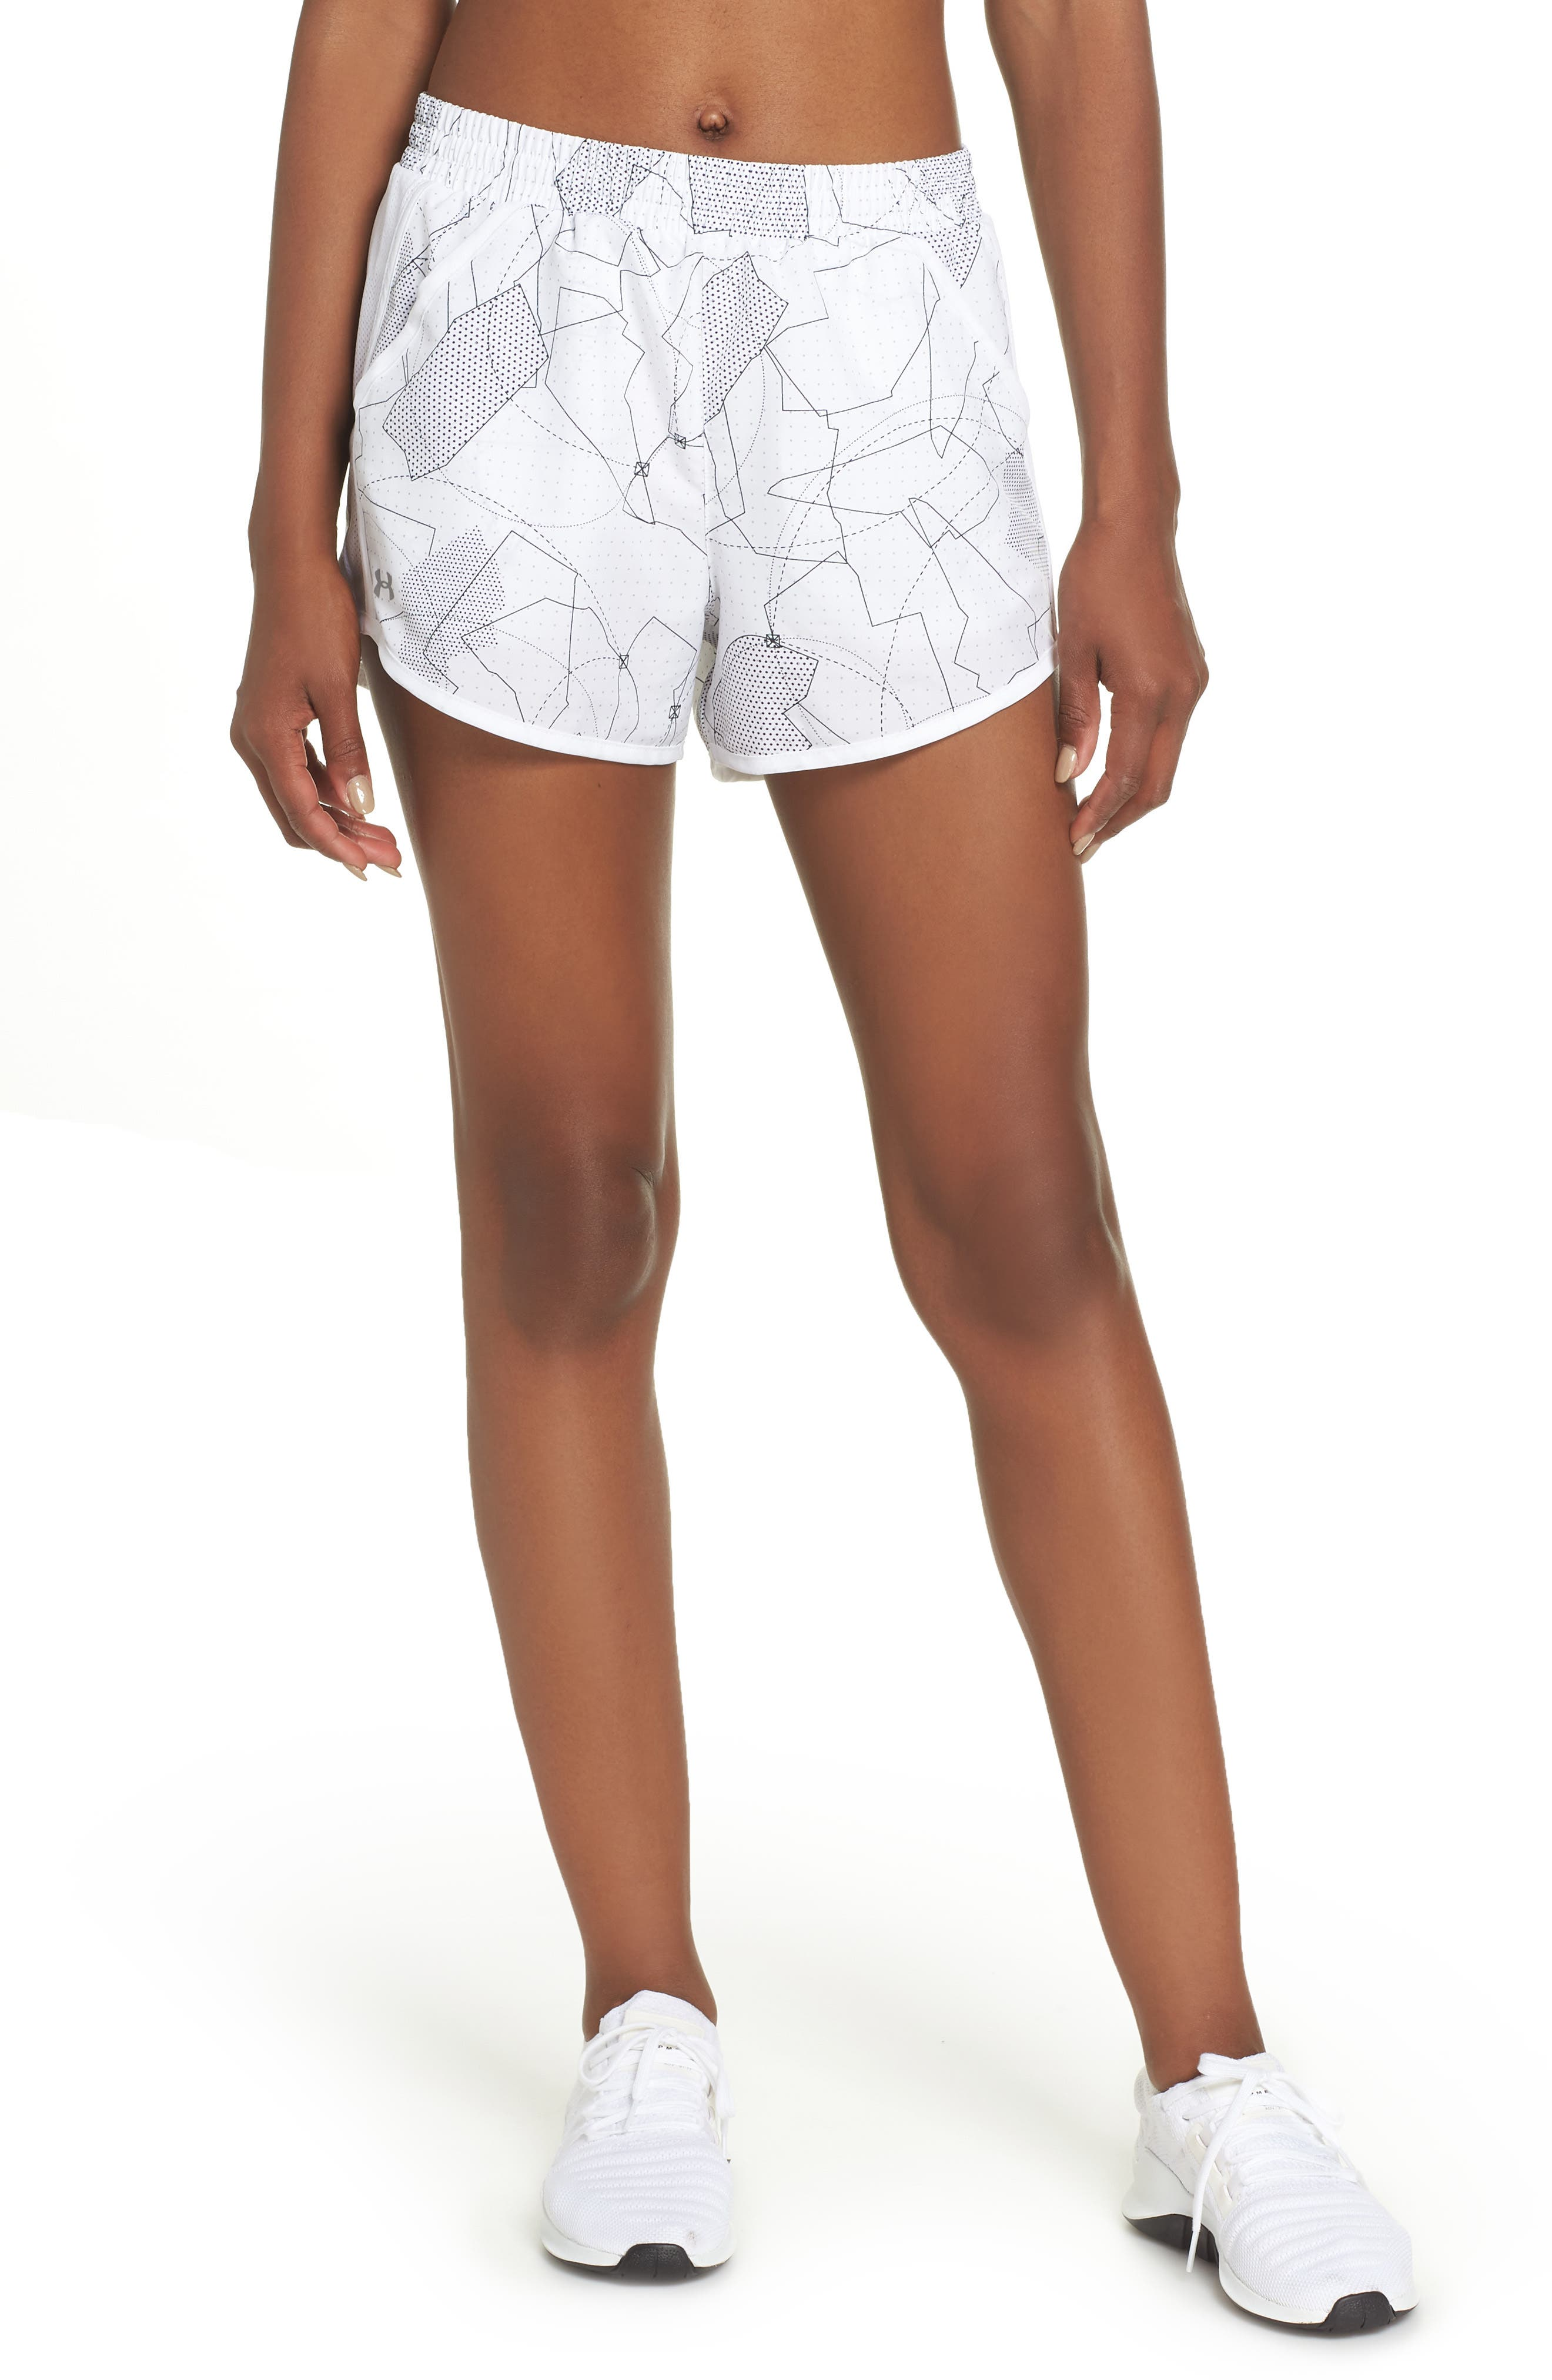 Fly-By Print Shorts,                         Main,                         color, White/ White/ Reflective